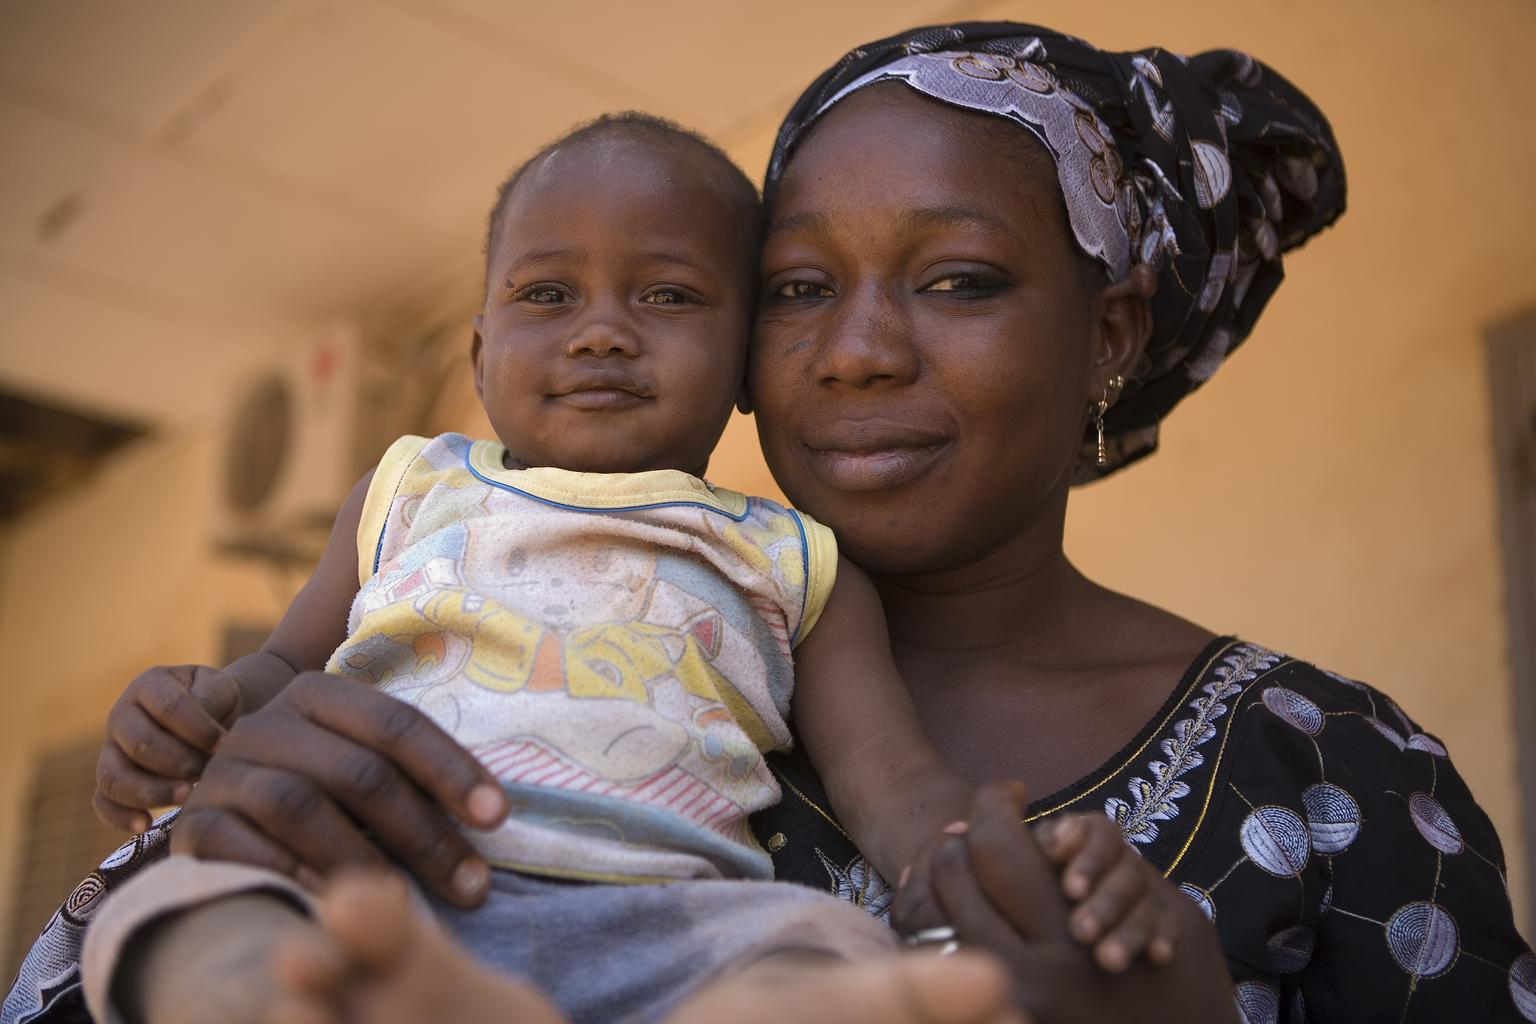 Hawa and her one-year-old son participated in a UNICEF-supported training session to provide psychosocial support to children from northern regions who have been displaced by fighting, Mali.